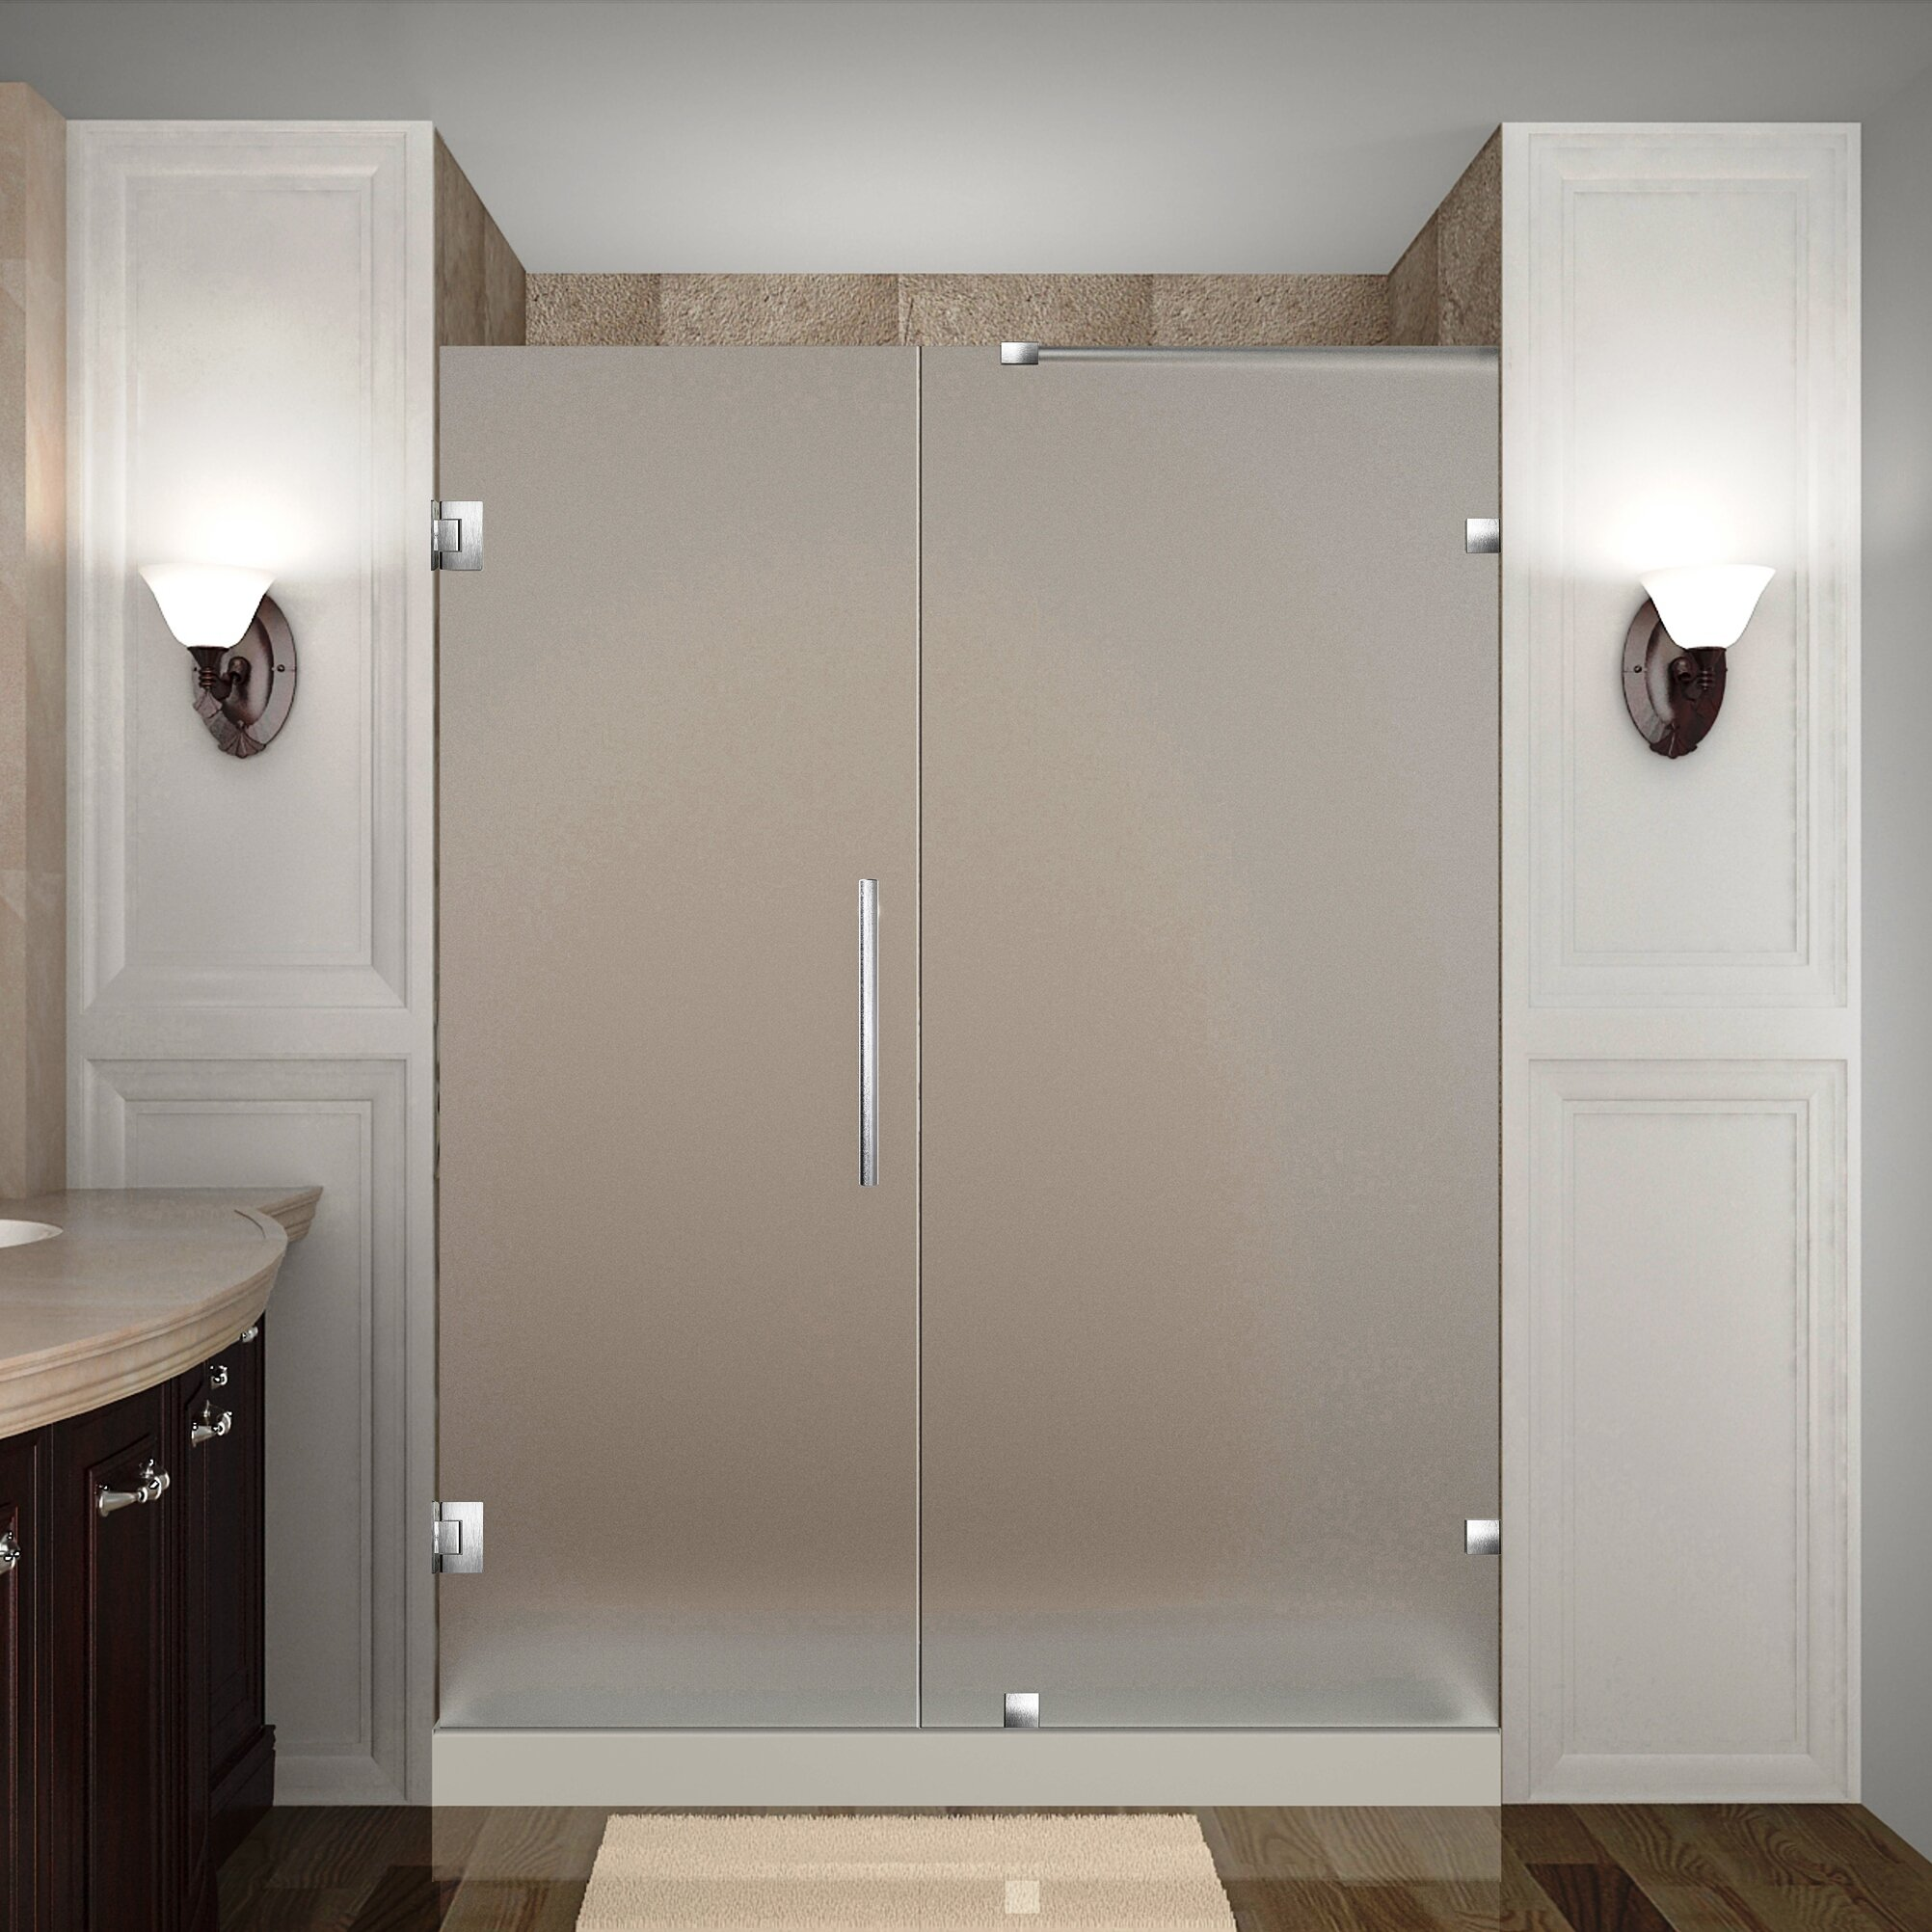 "Aston Nautis 72"" X 58"" Completely Frameless Hinged Shower Door, Frosted Glass"